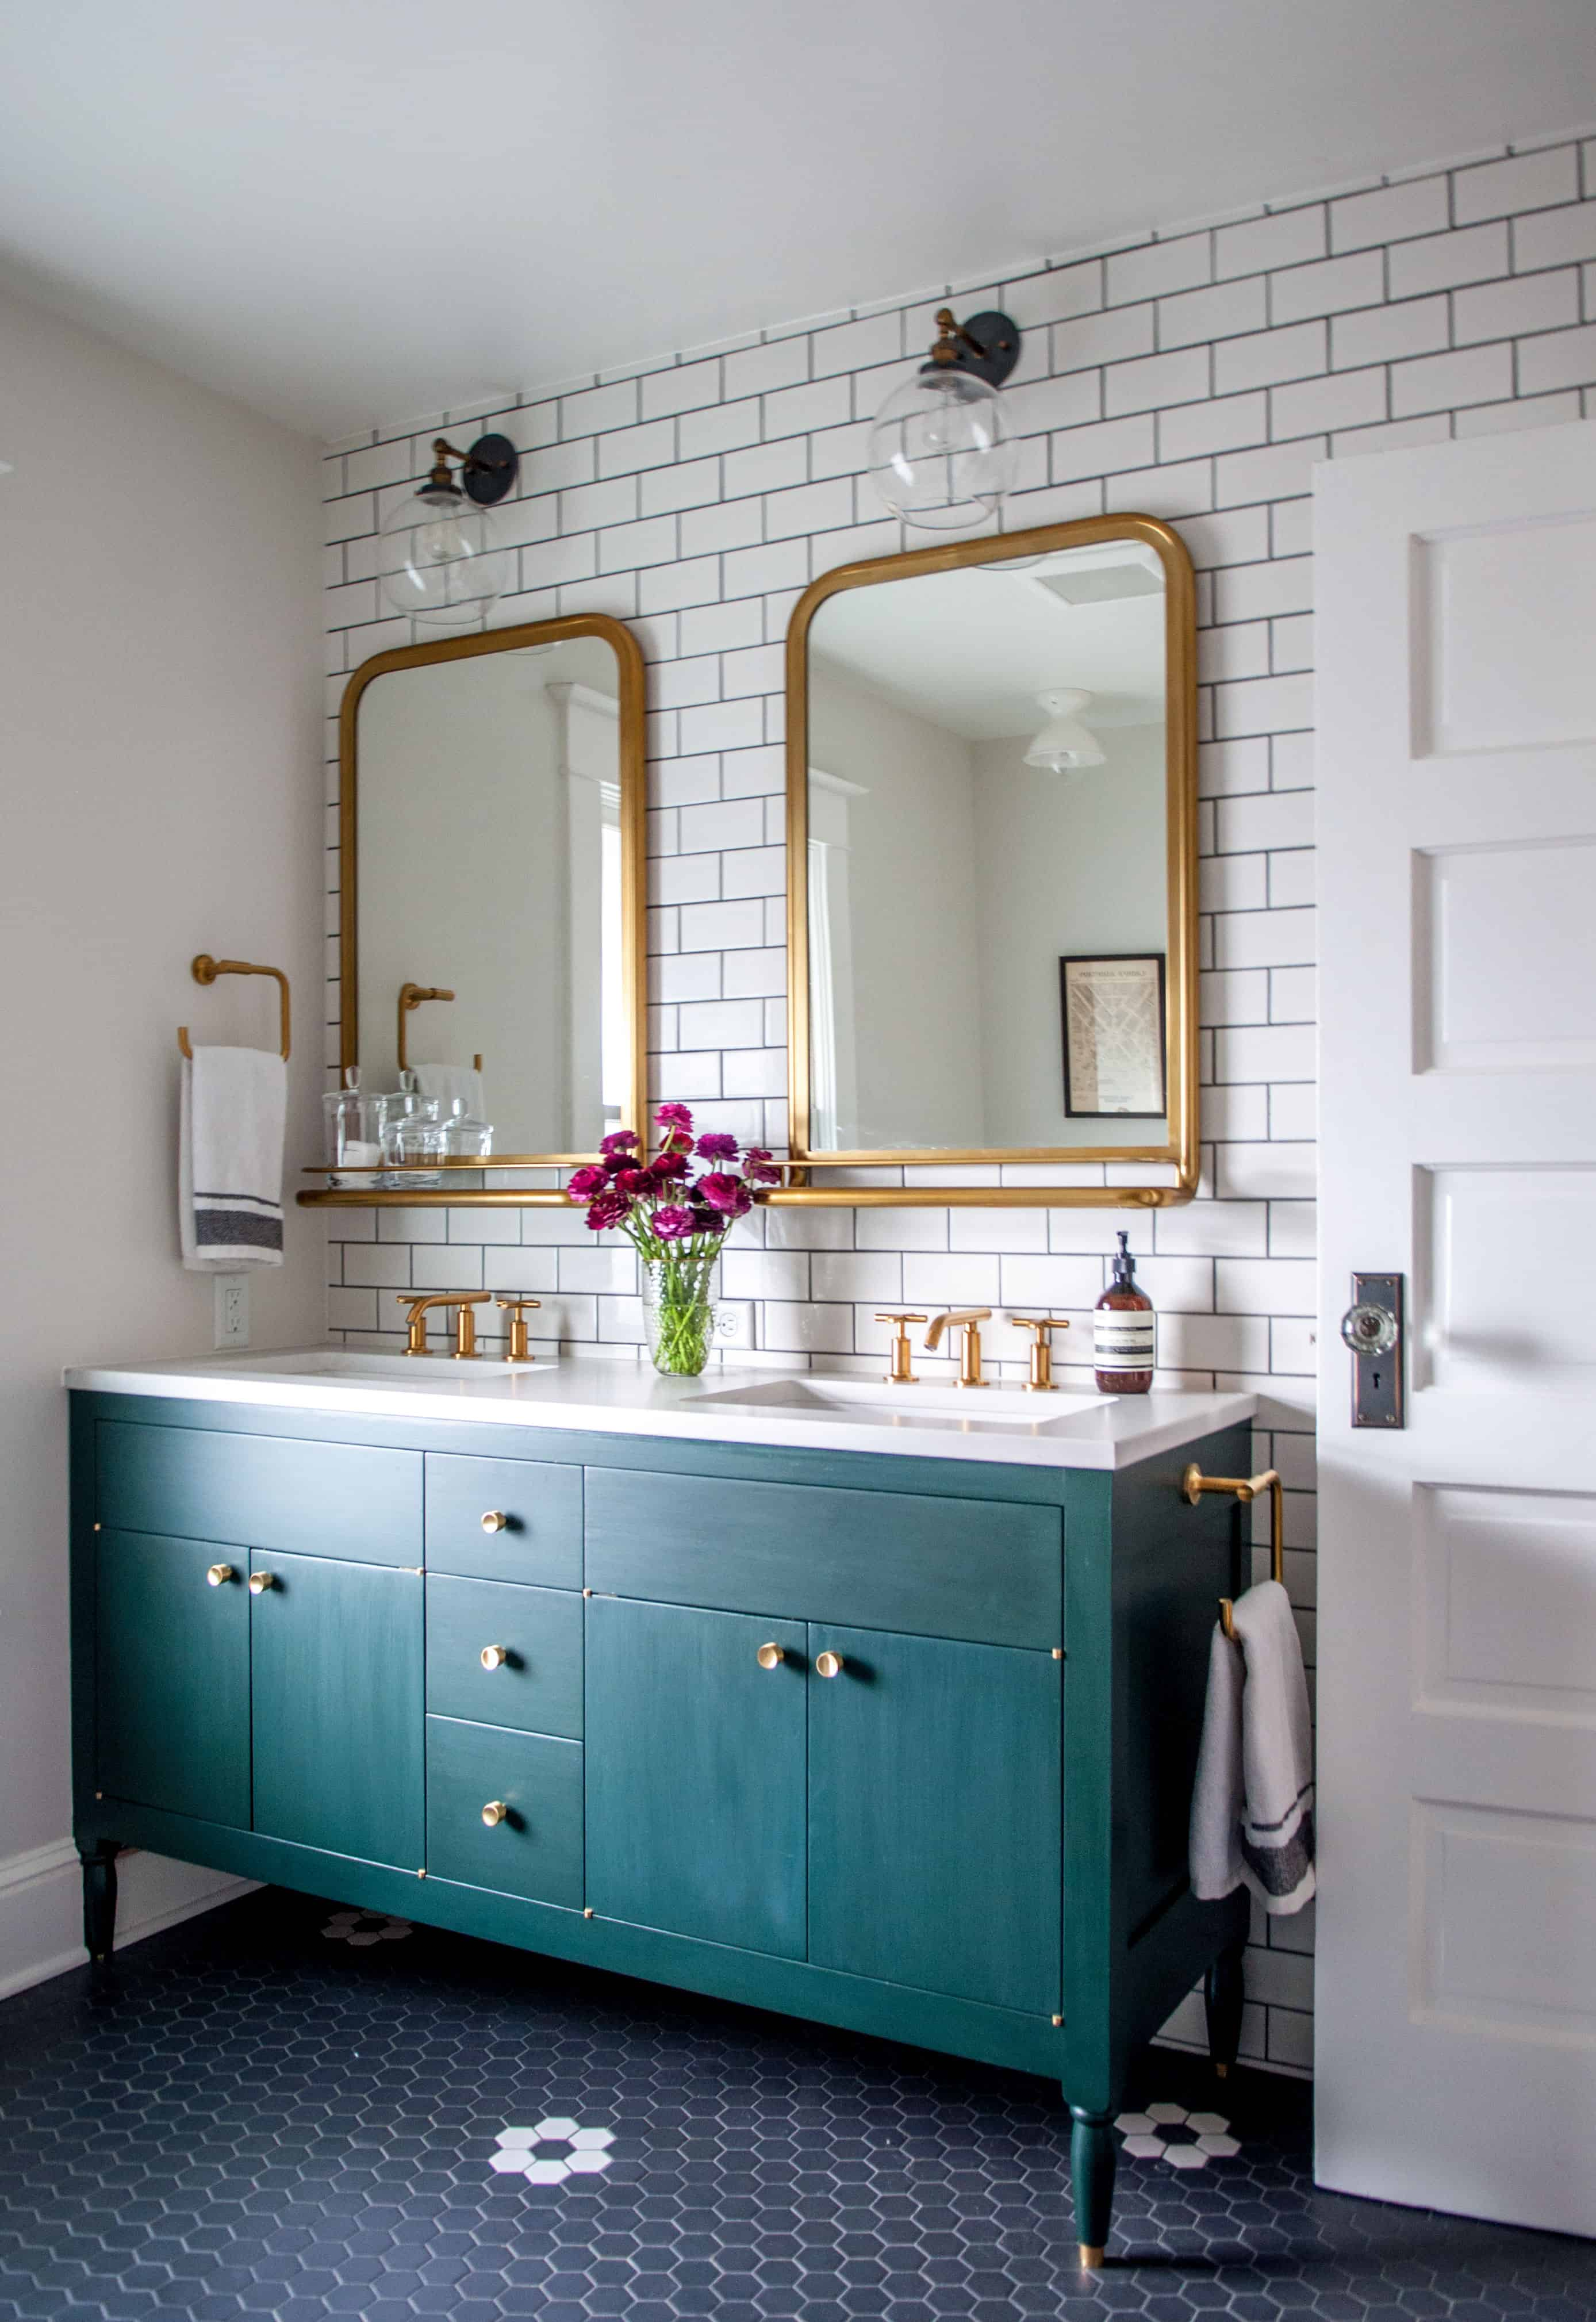 Brass accents are great because they work well in the bathroom as well as in the kitchen and any area of the home.